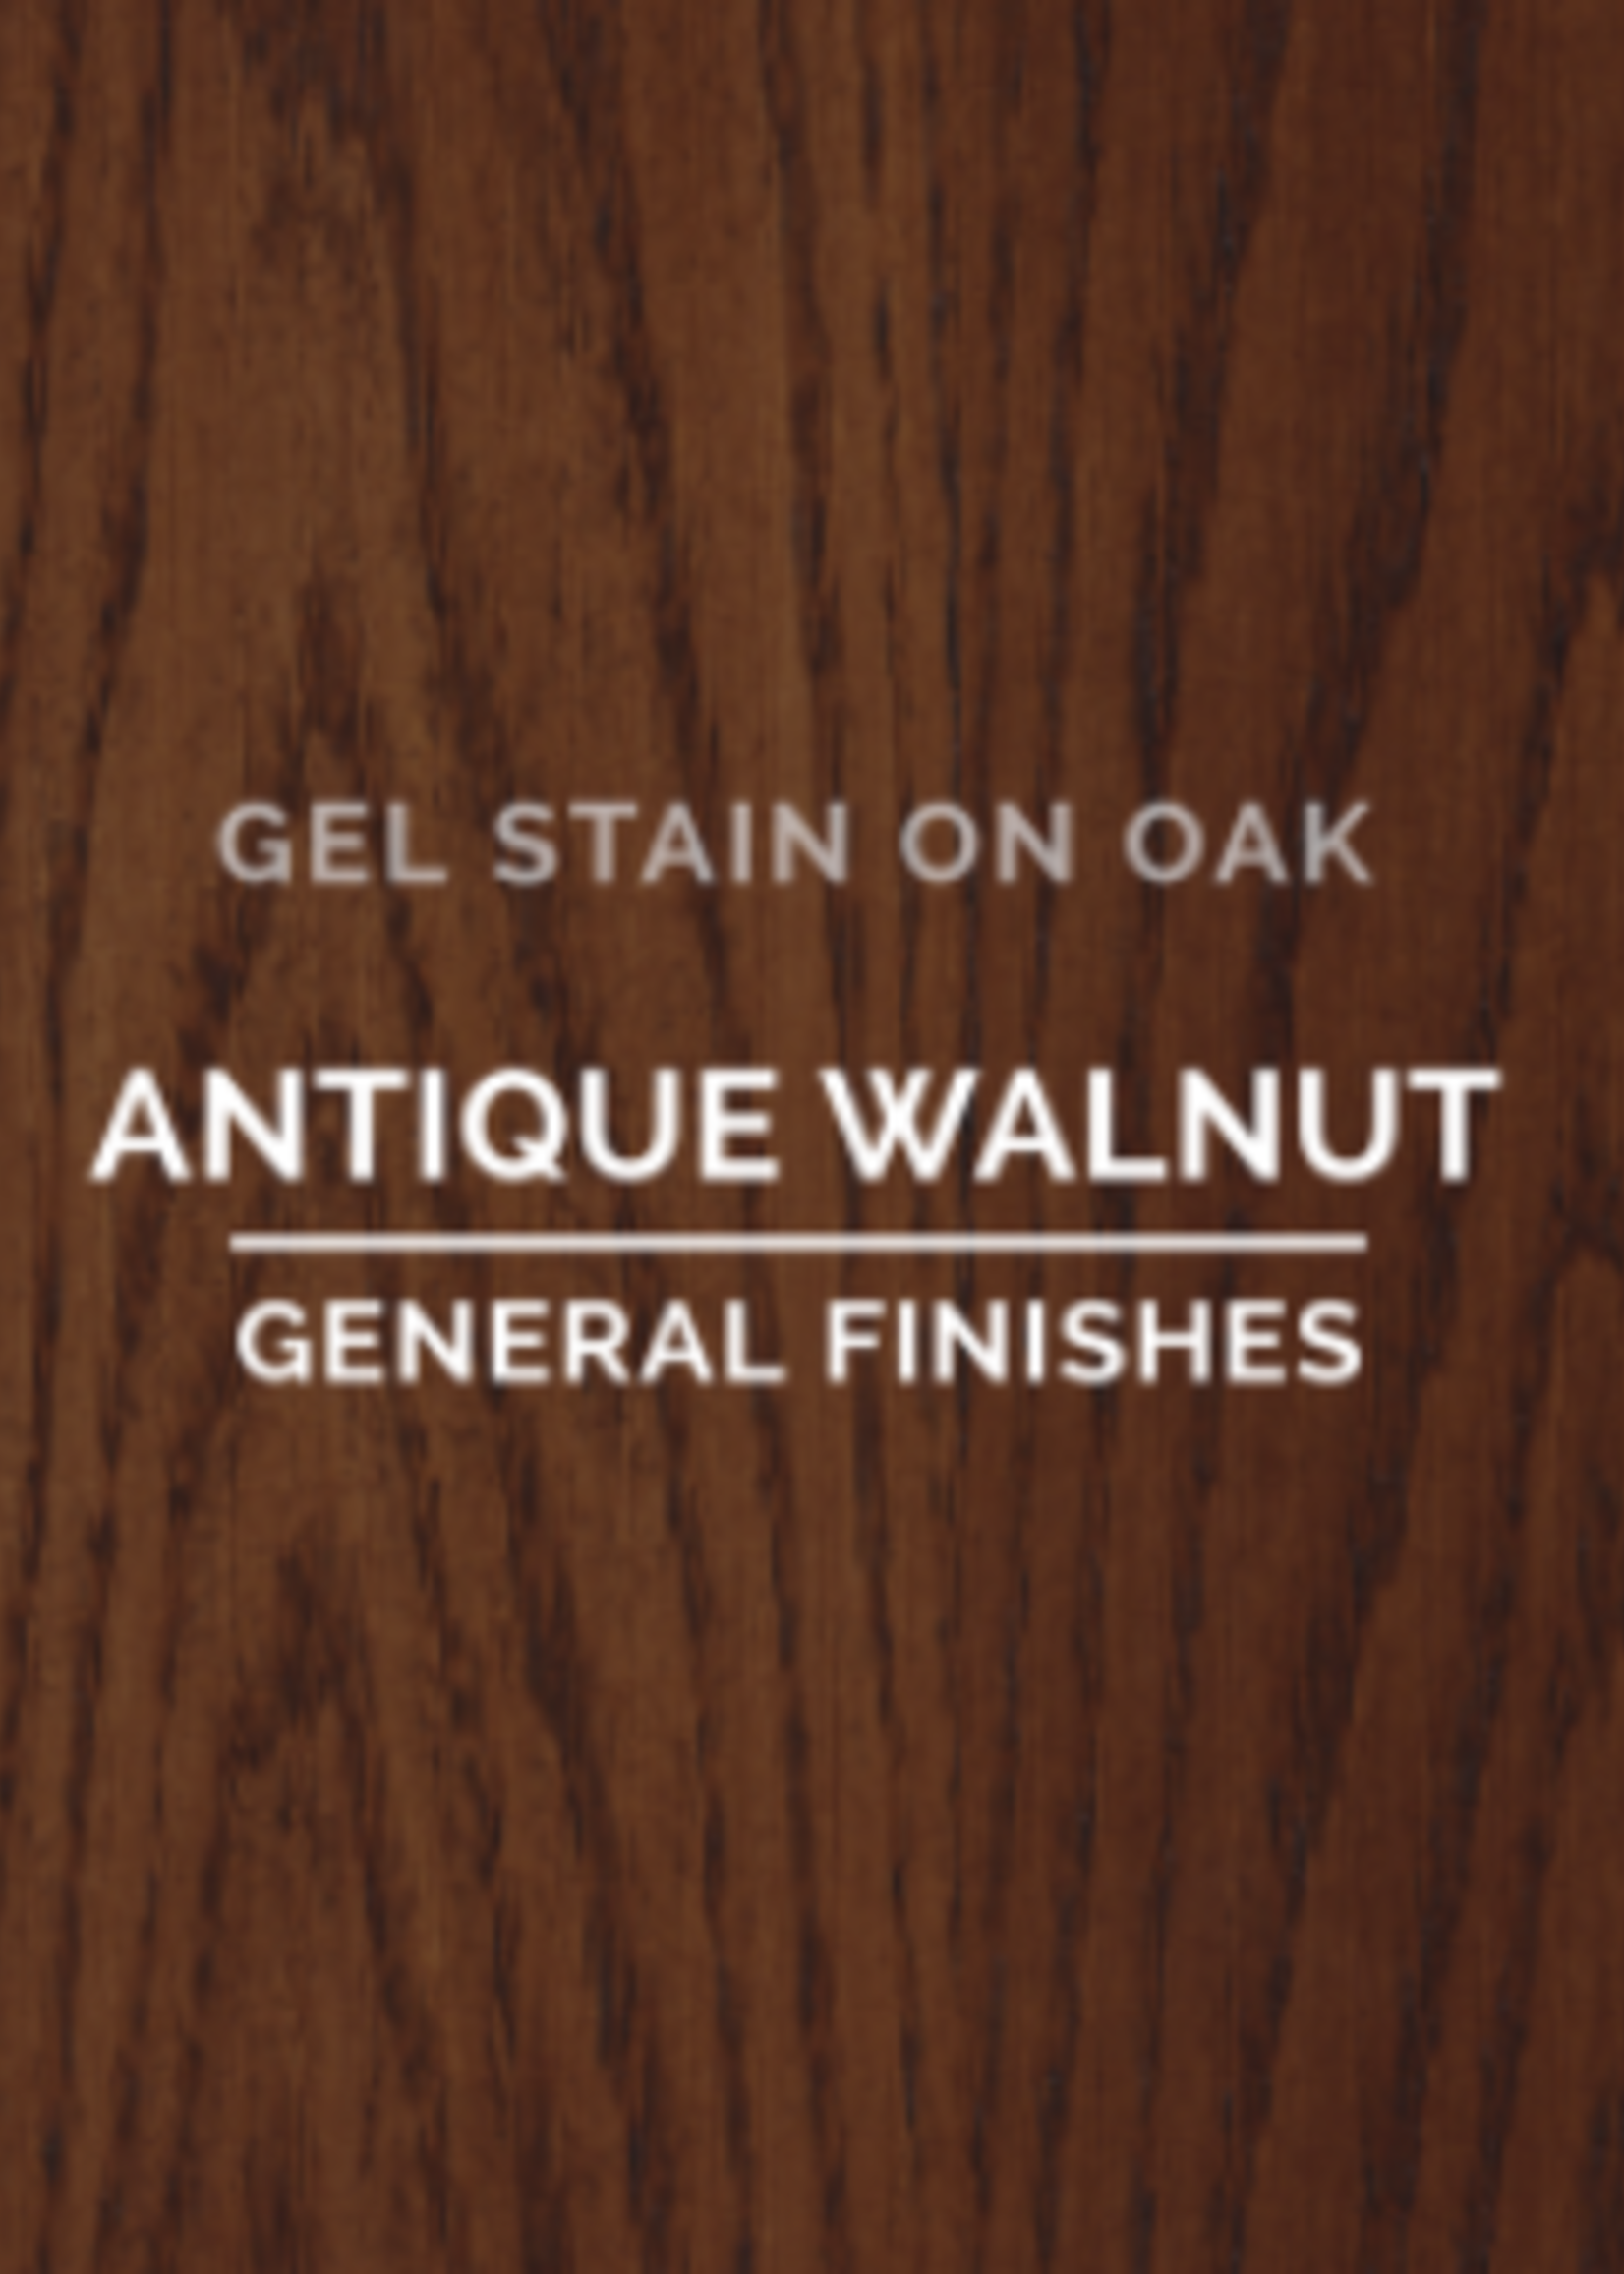 General Finishes General Finishes Gel Stain